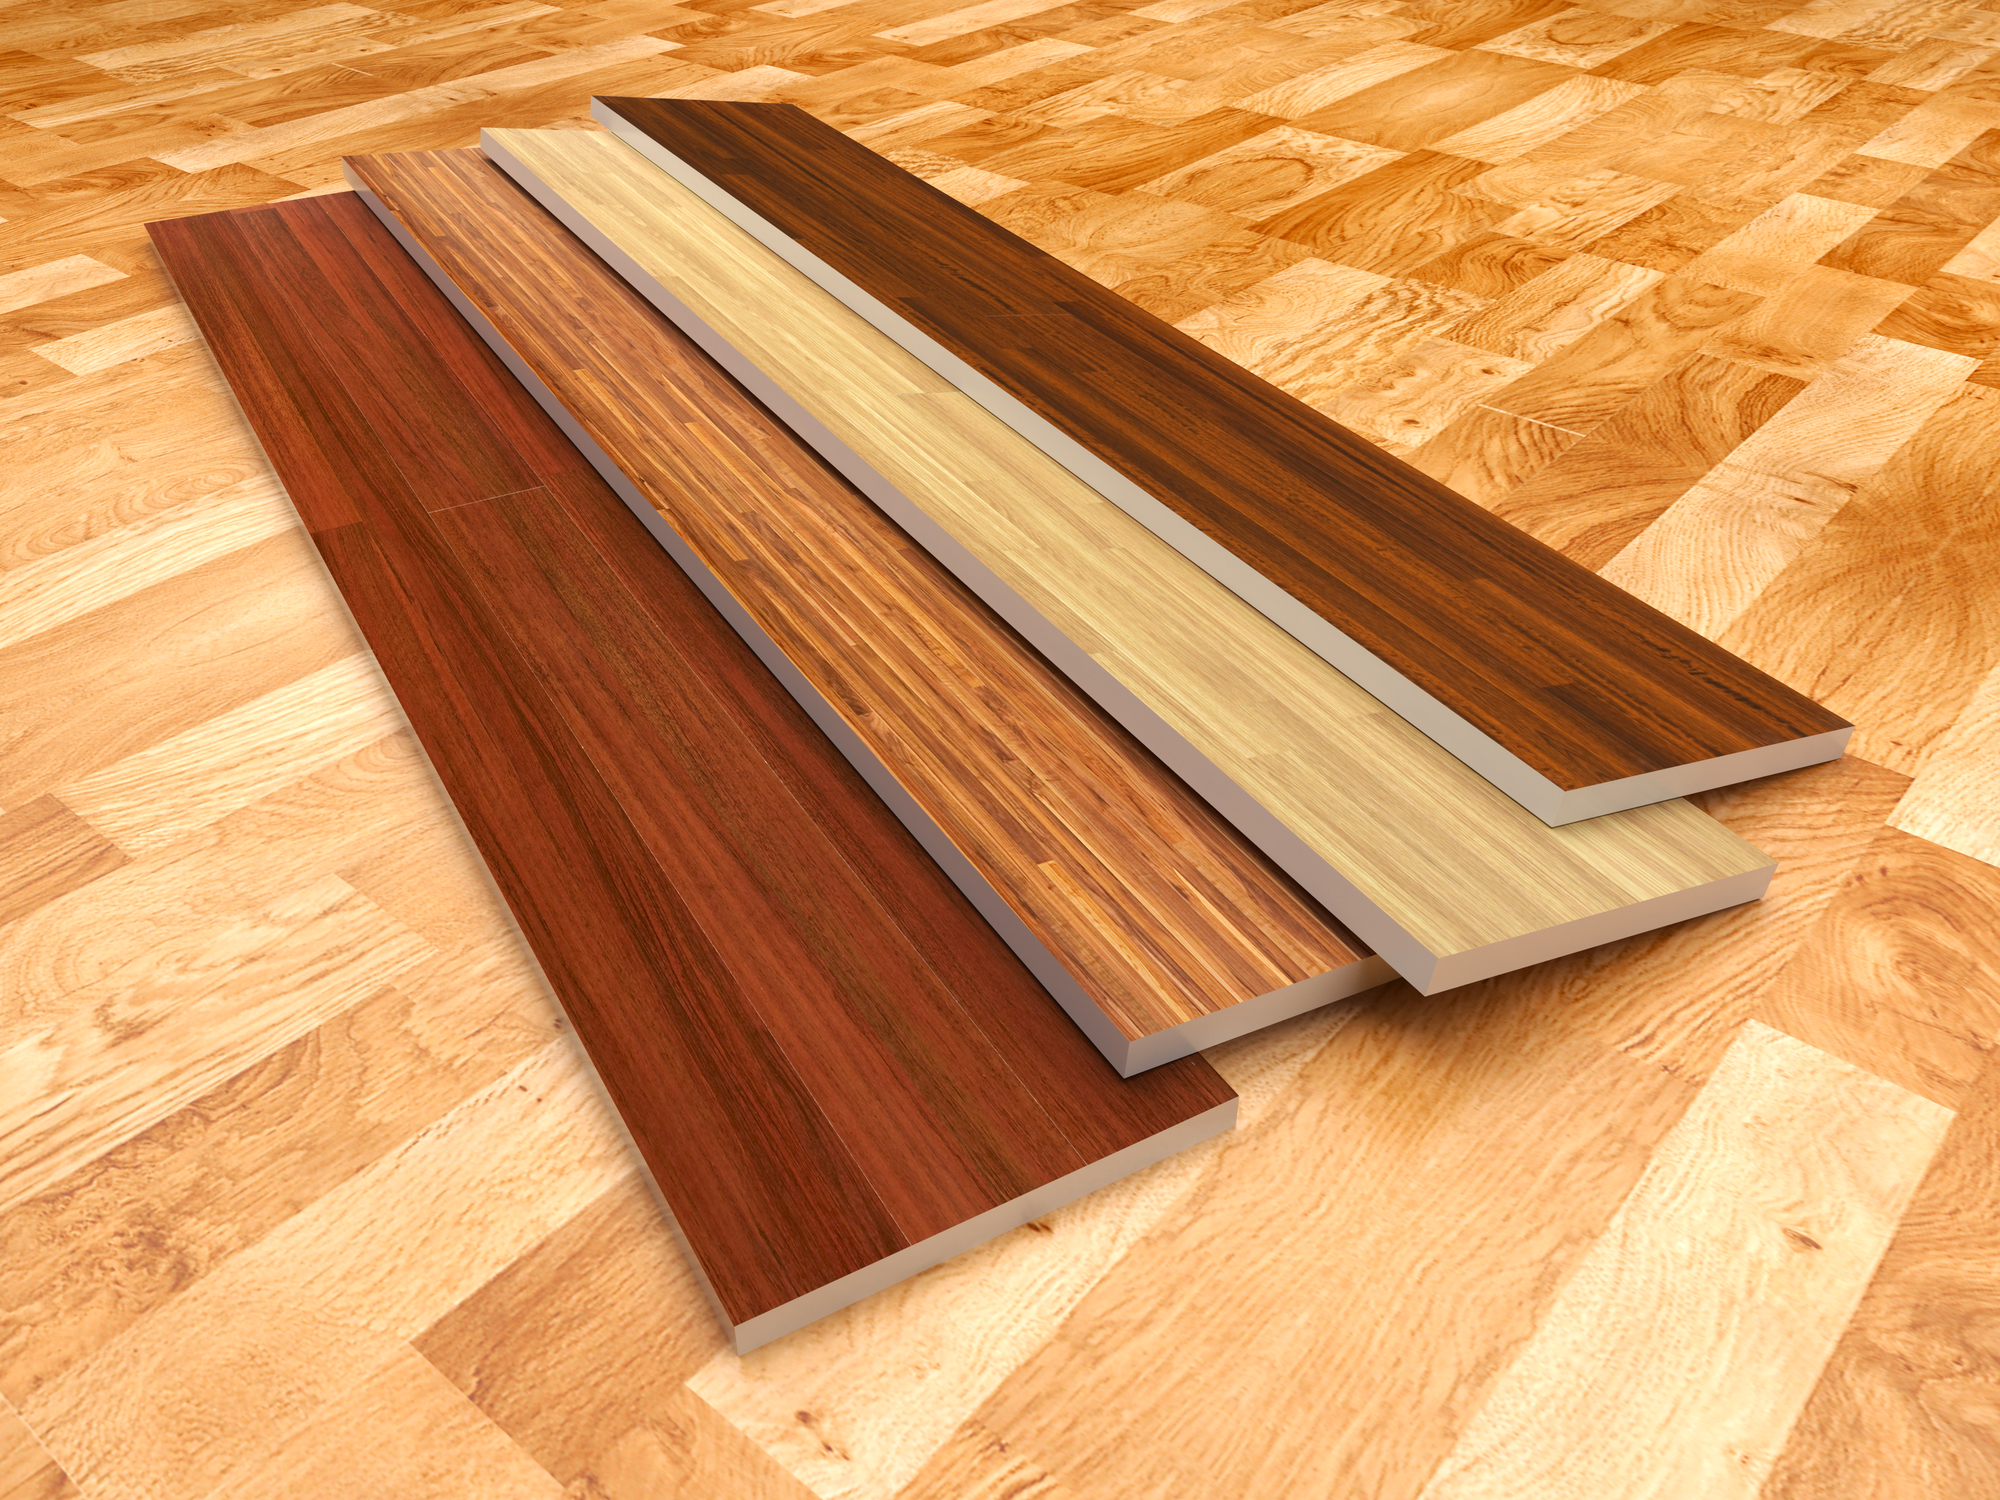 Choosing the right hardwood flooring for your home jt 39 s for Right flooring